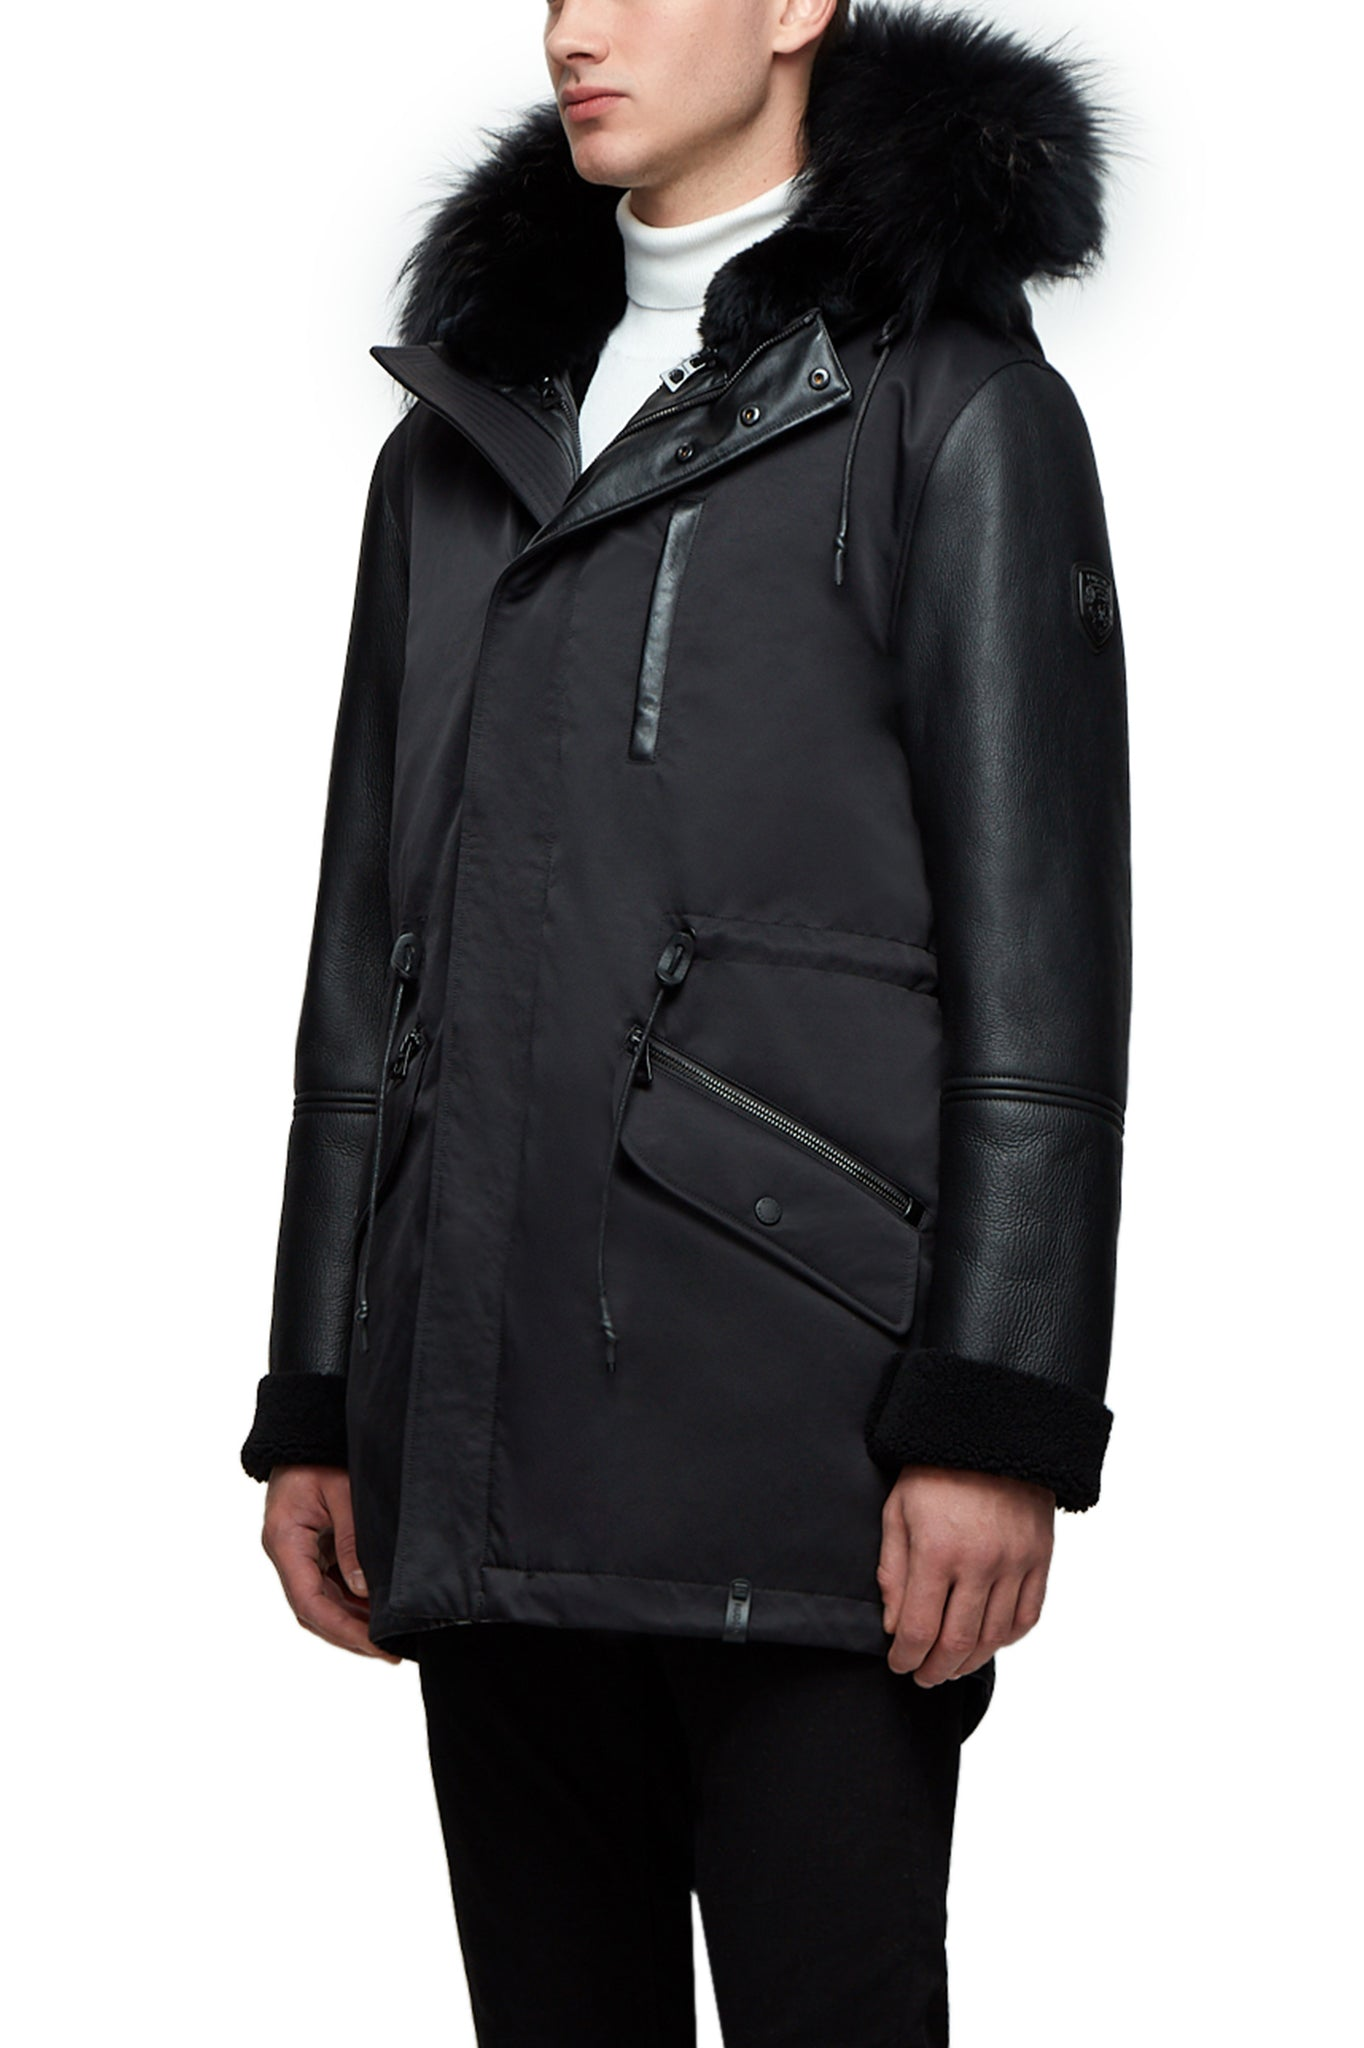 Rudsak Black Parka Coat with Hood